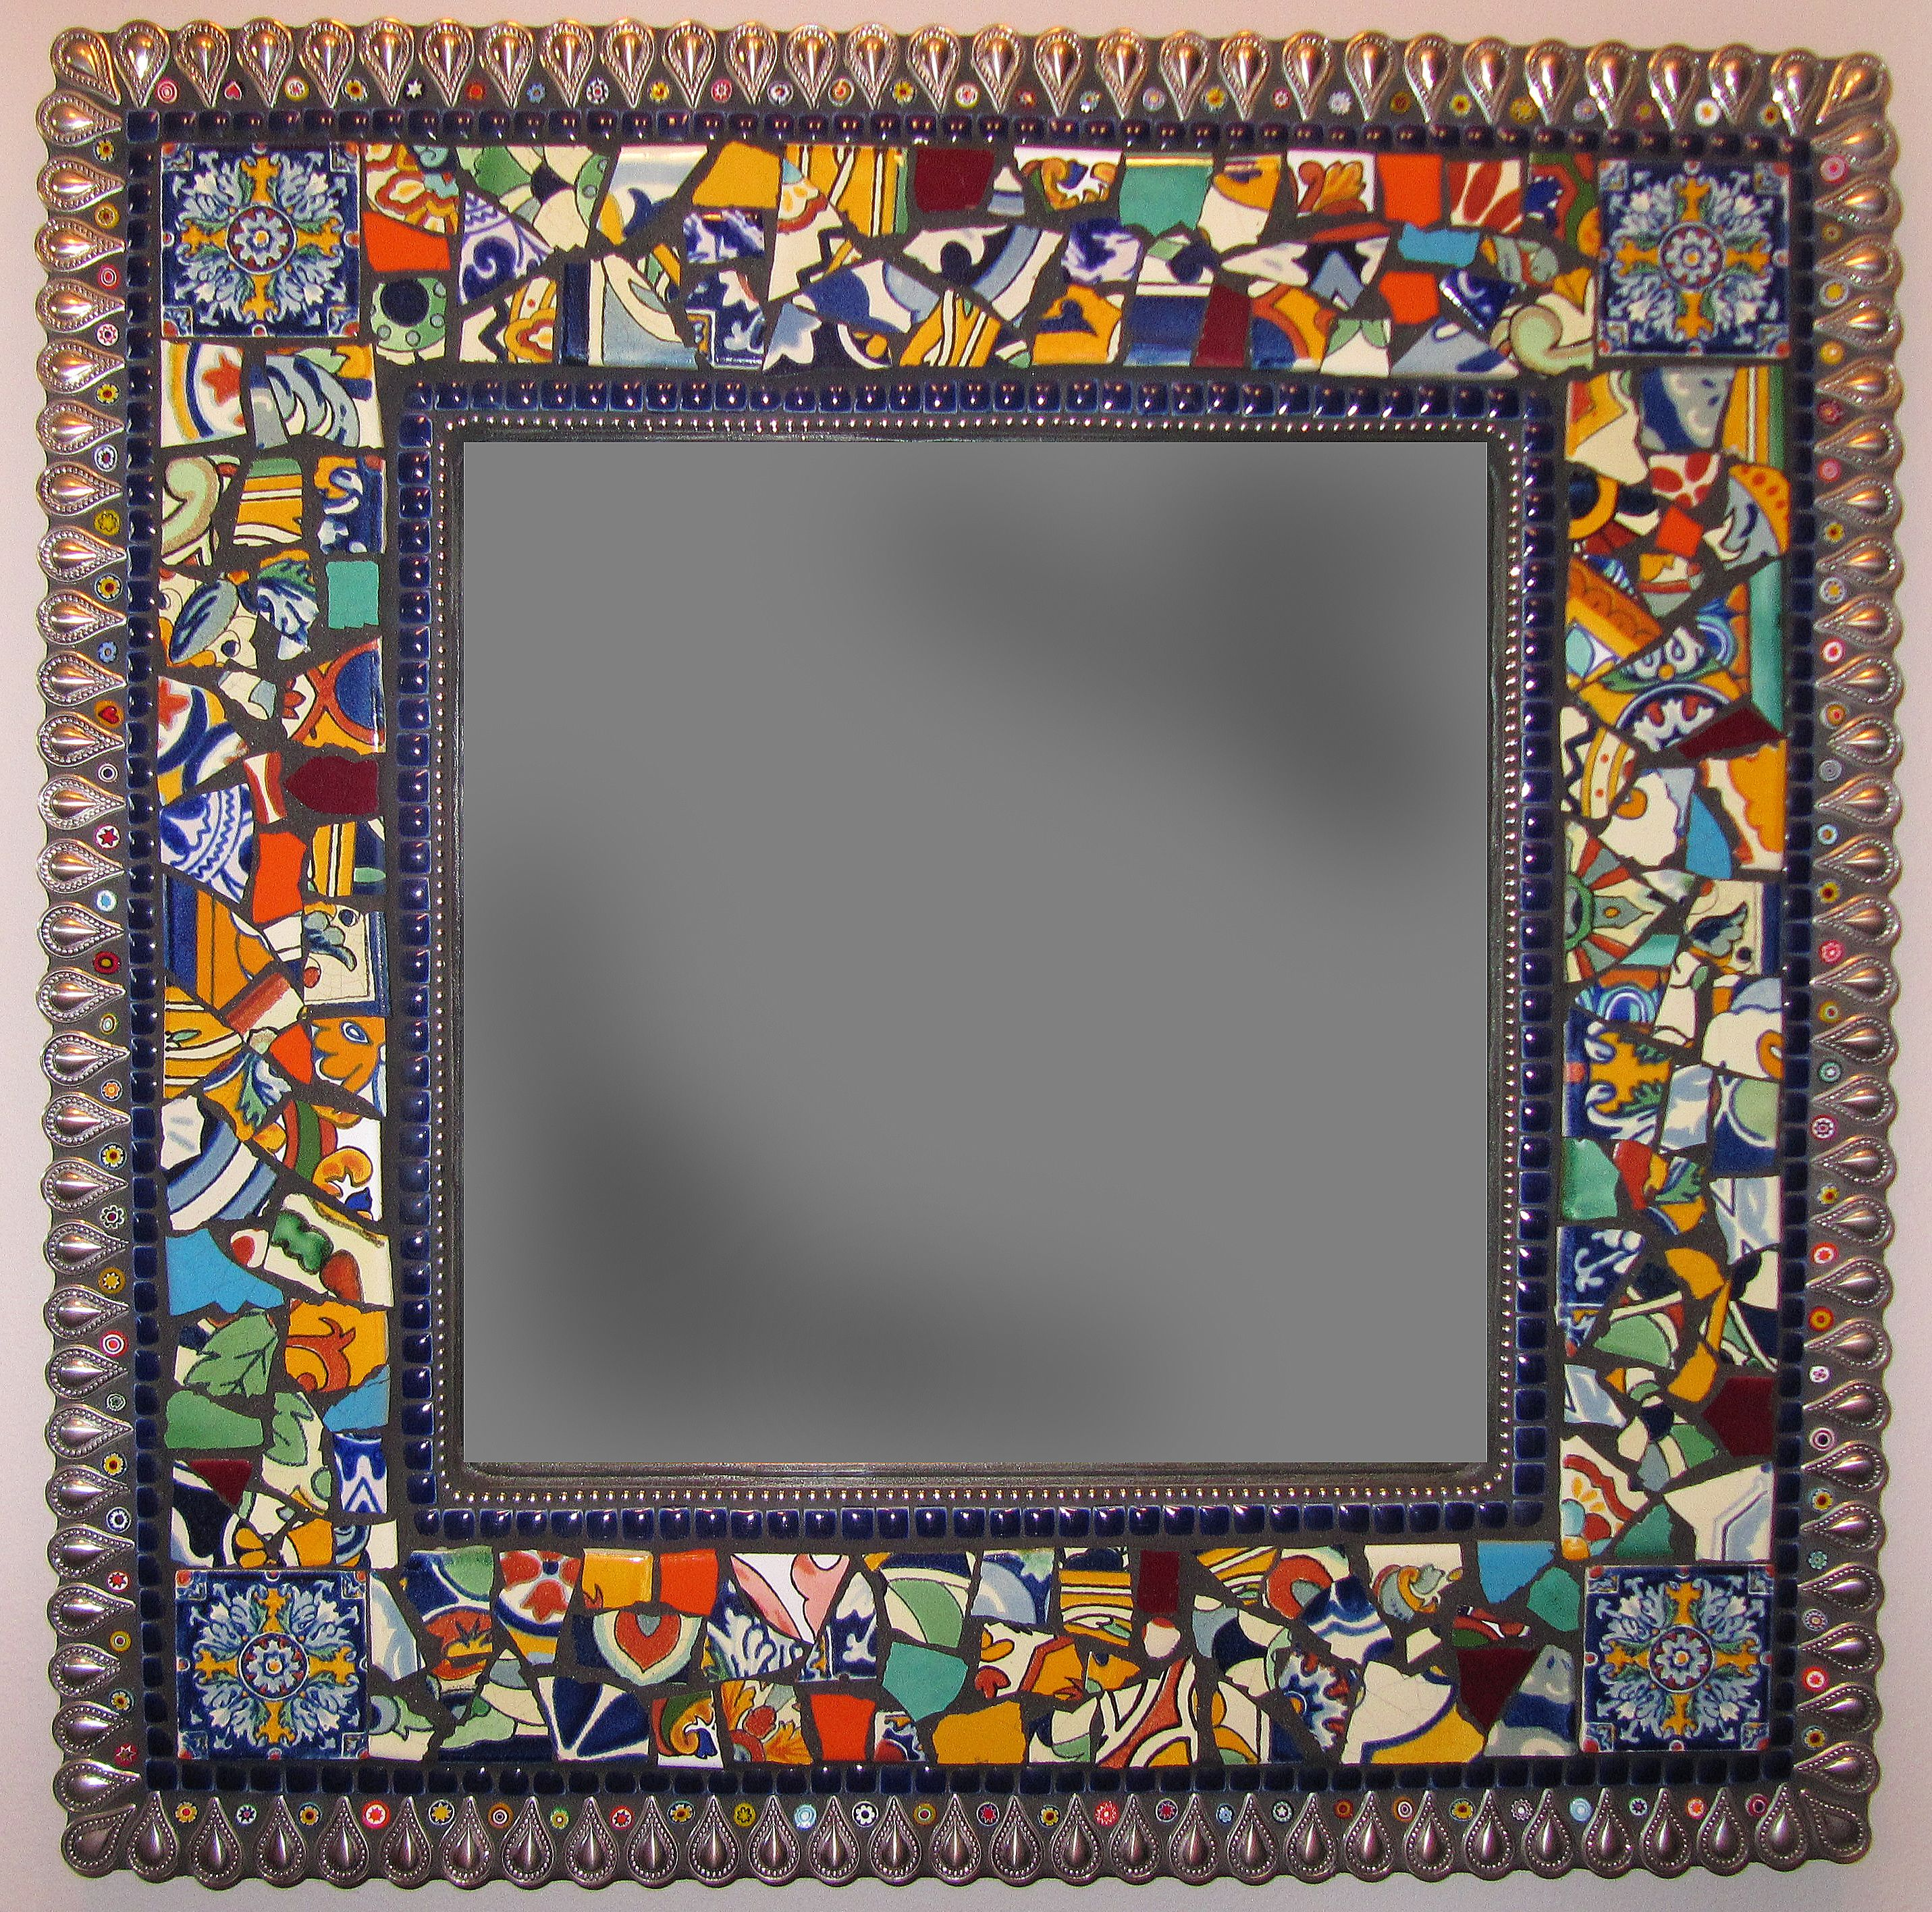 Spiegel Mosaik Mexican Tile Mosaic Mirror By Emily Hickman Made With